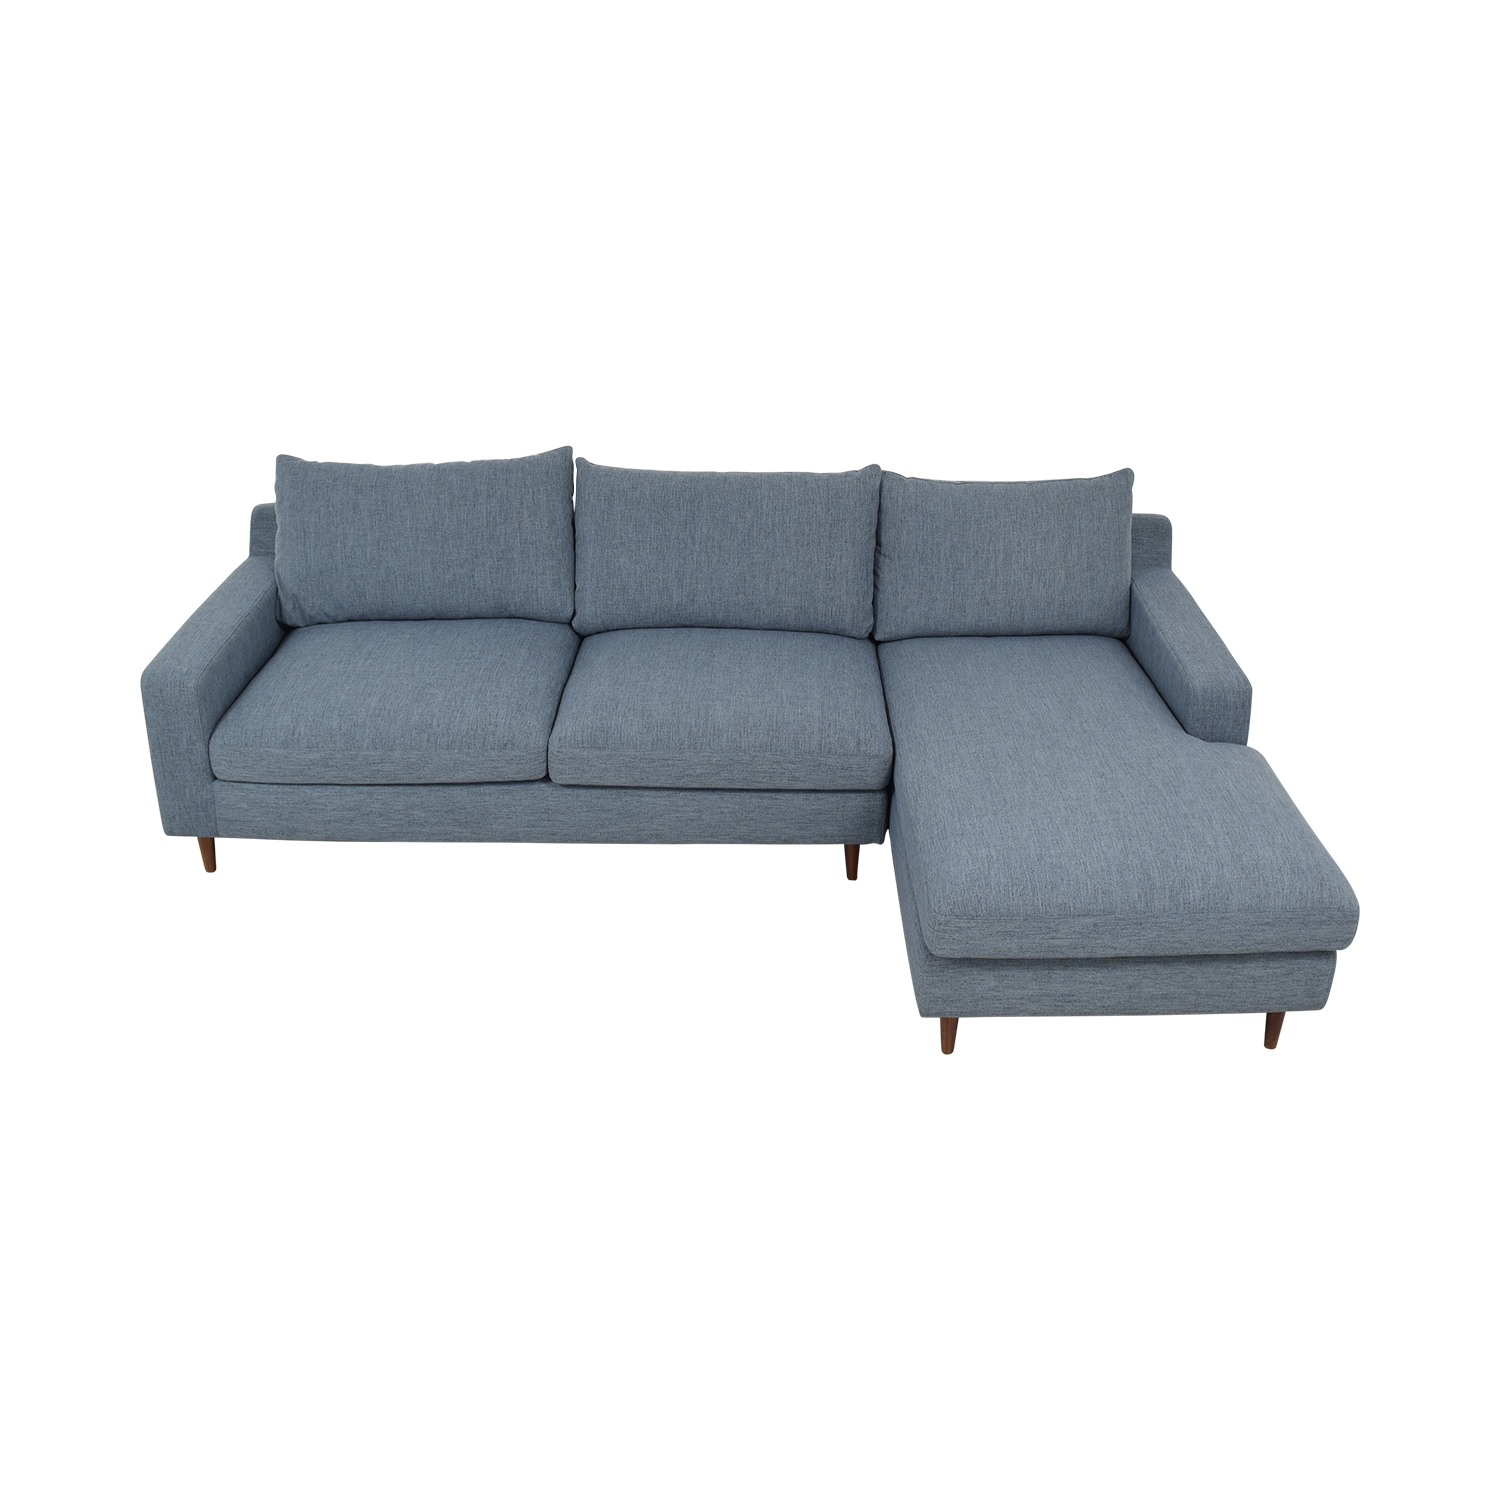 47% OFF - Sloan Left Chaise Sectional Sofa / Sofas